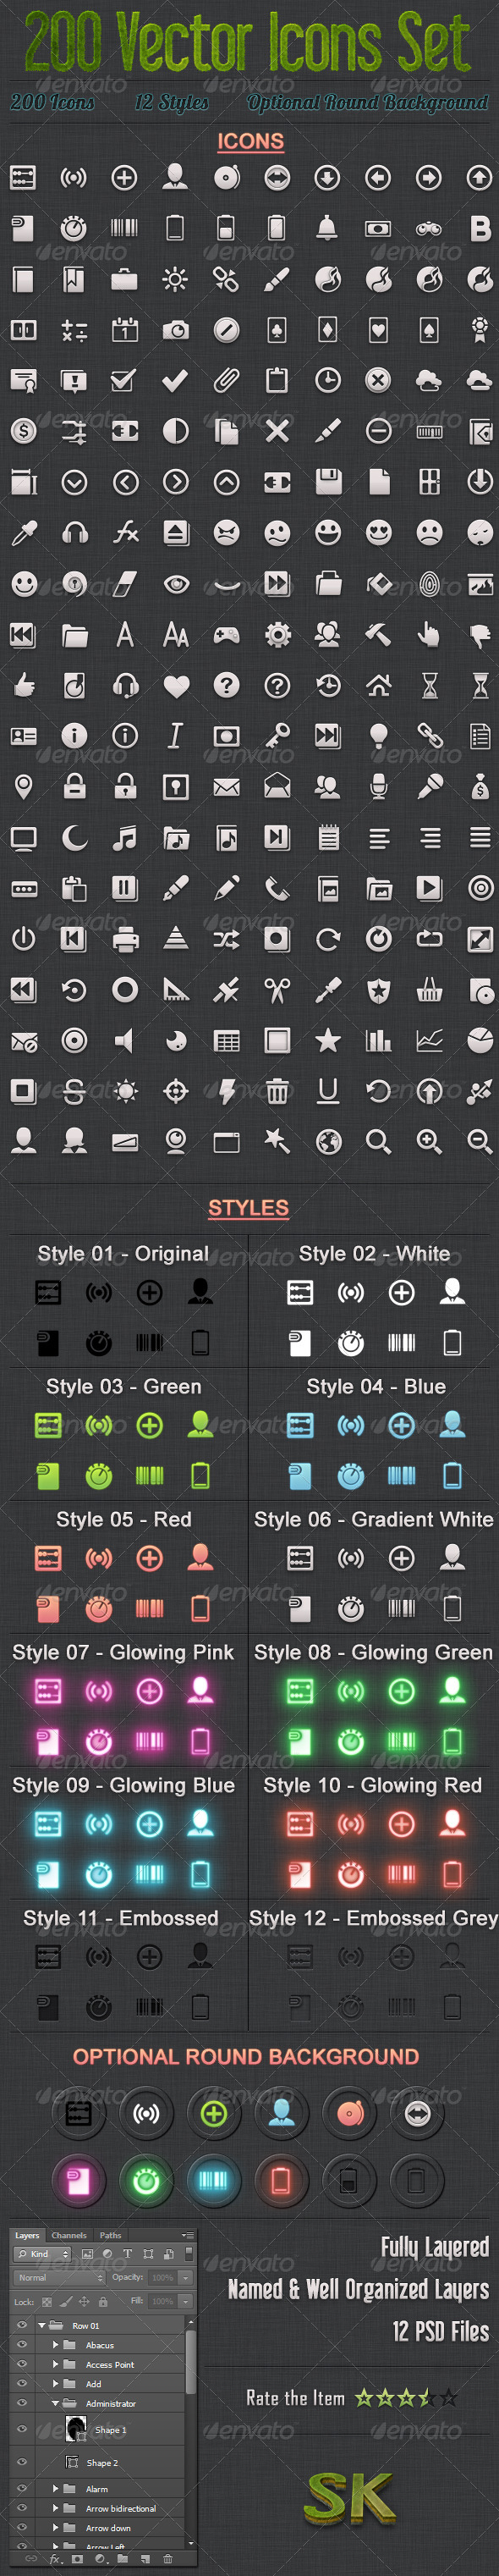 GraphicRiver 200 Vector Icons Set 5538319